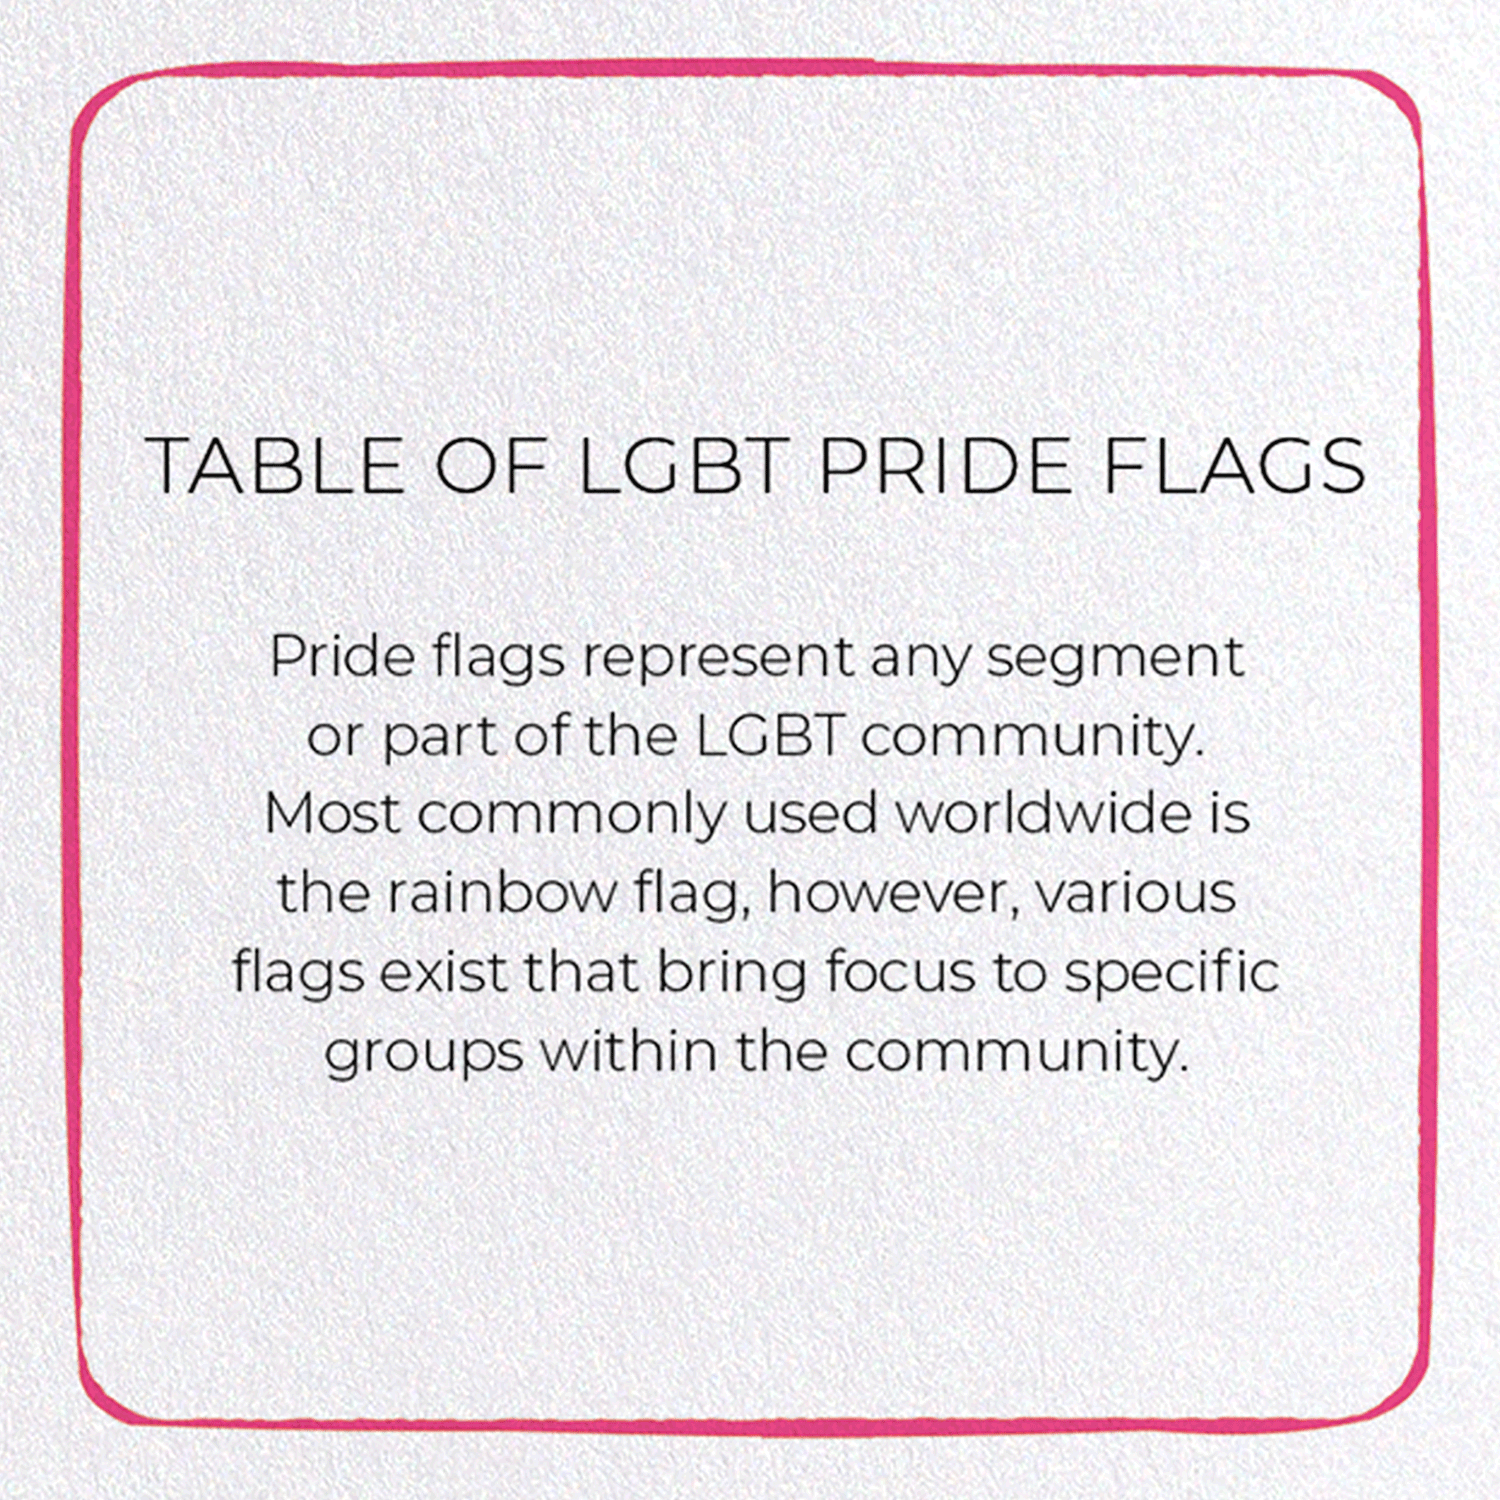 TABLE OF LGBT PRIDE FLAGS: 8xCards